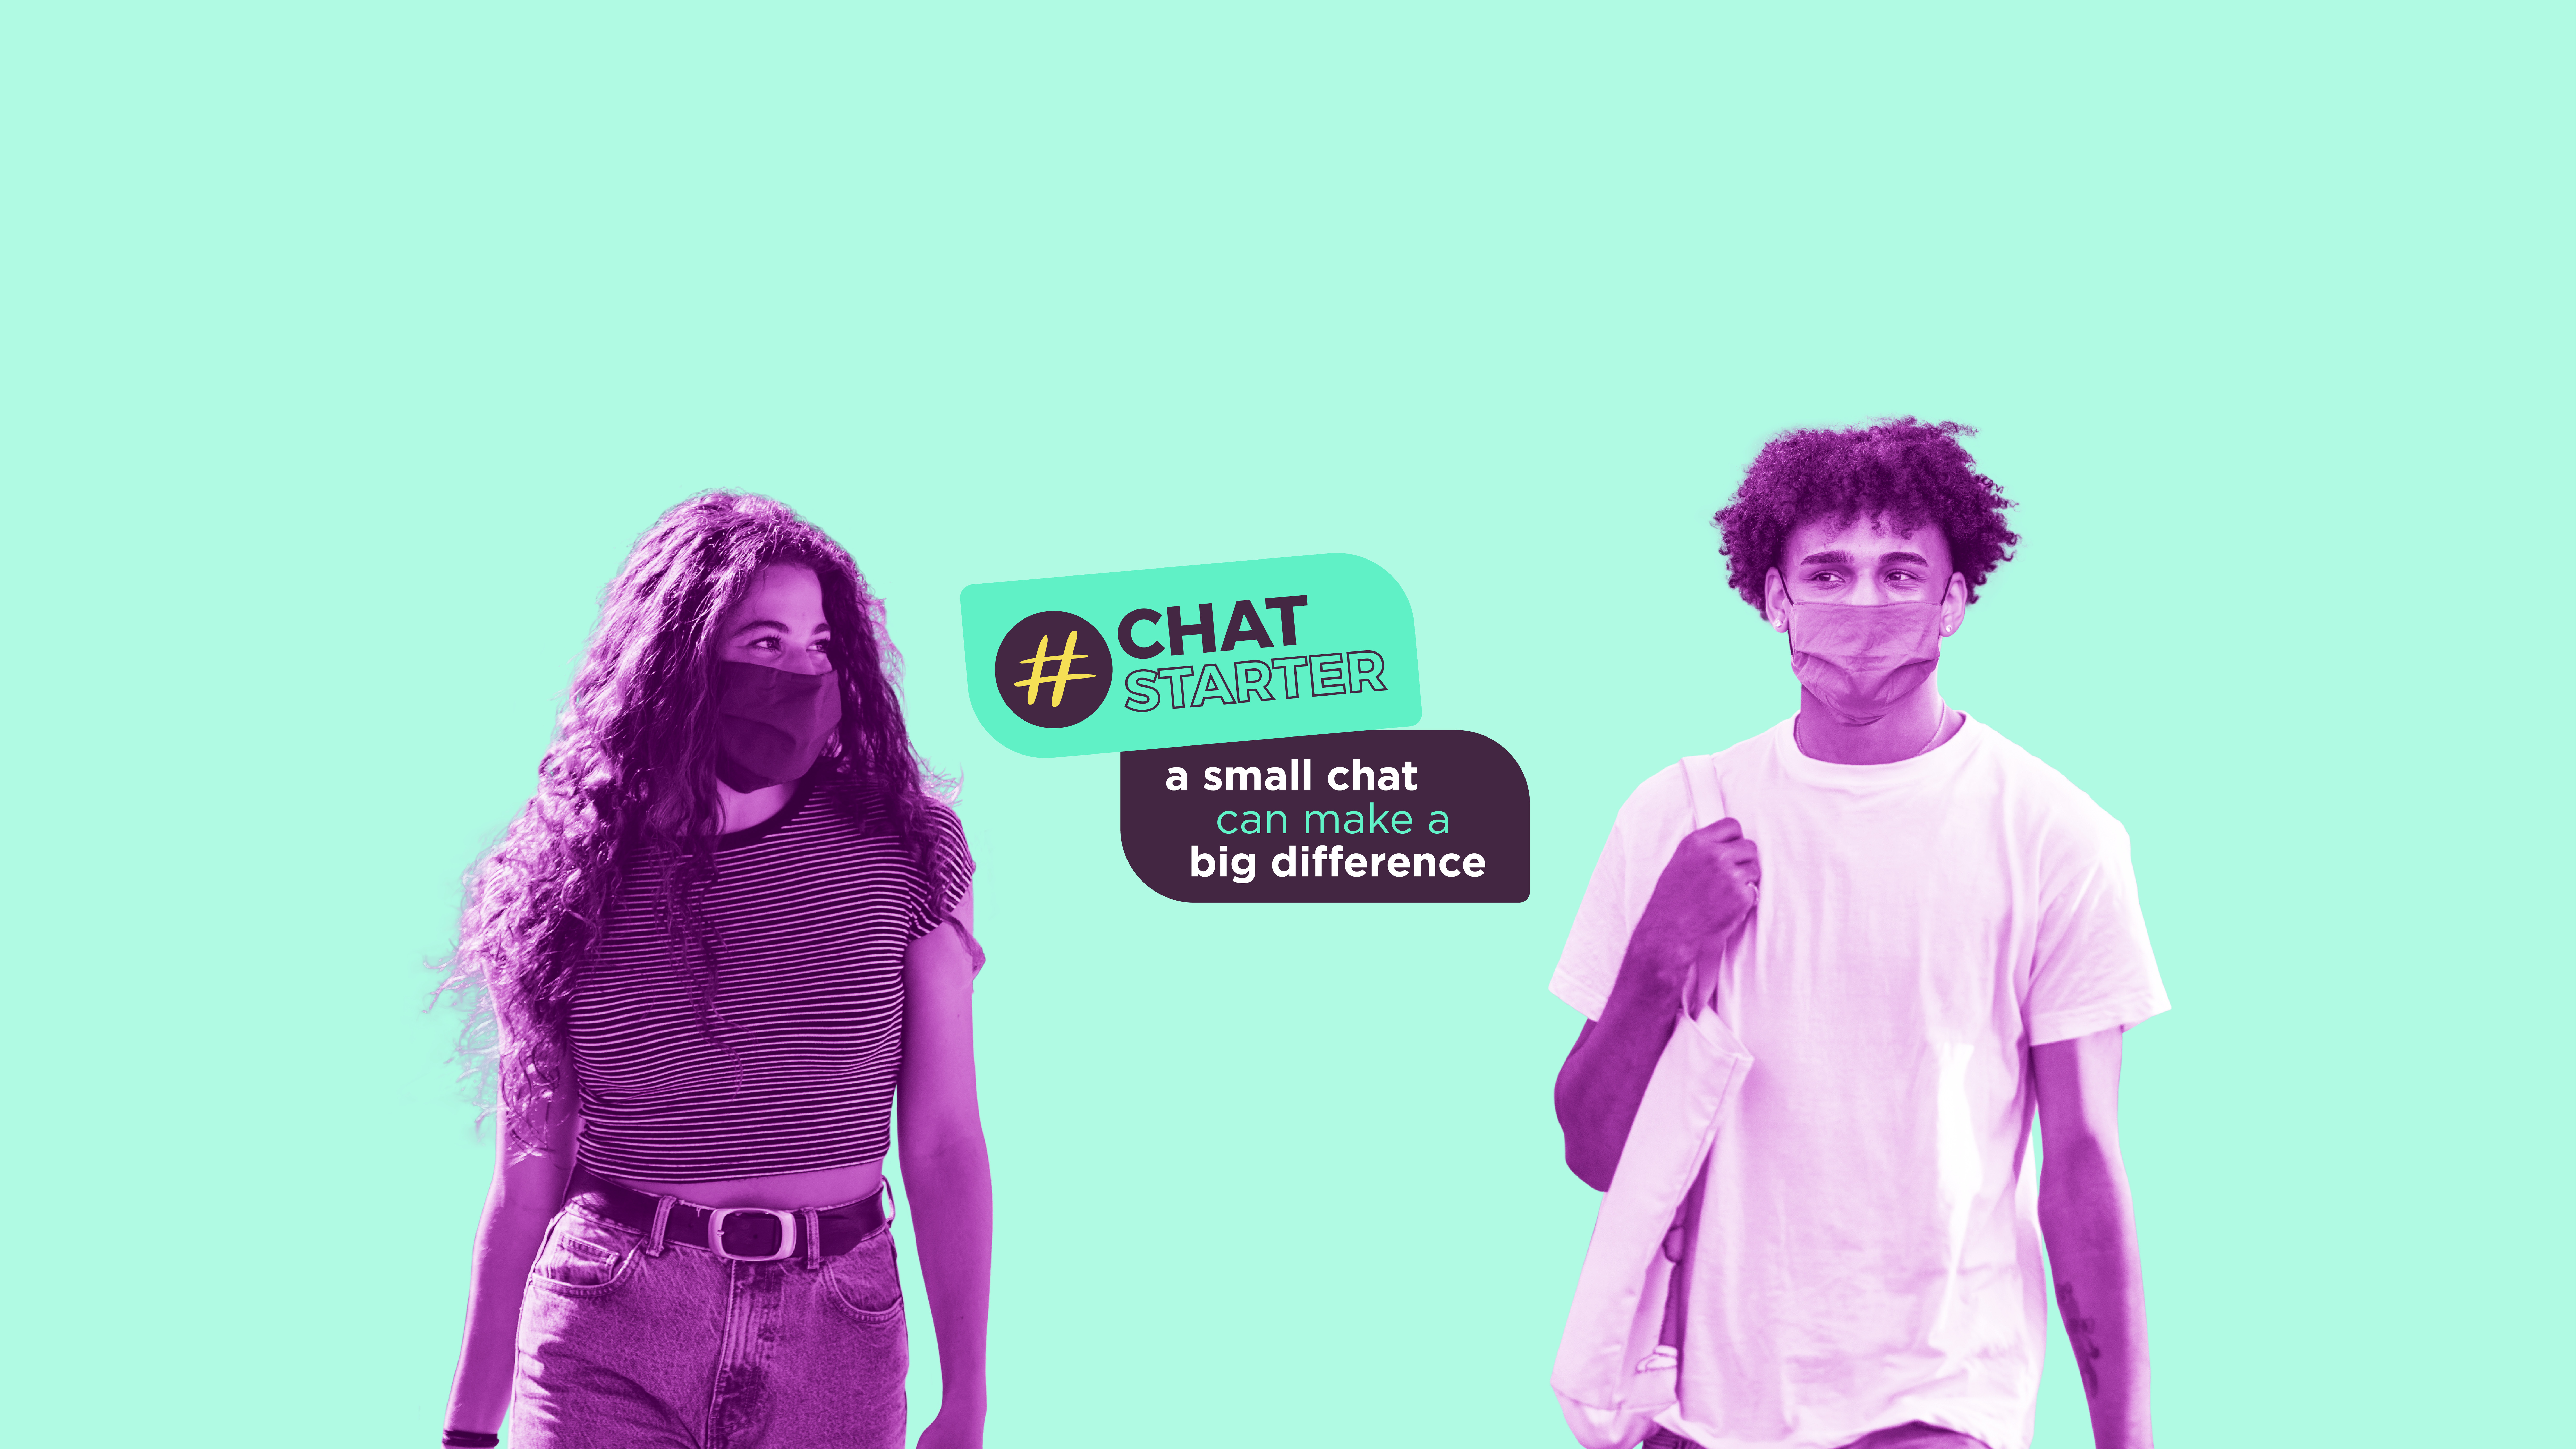 Start a chat: Start a meaningful connection